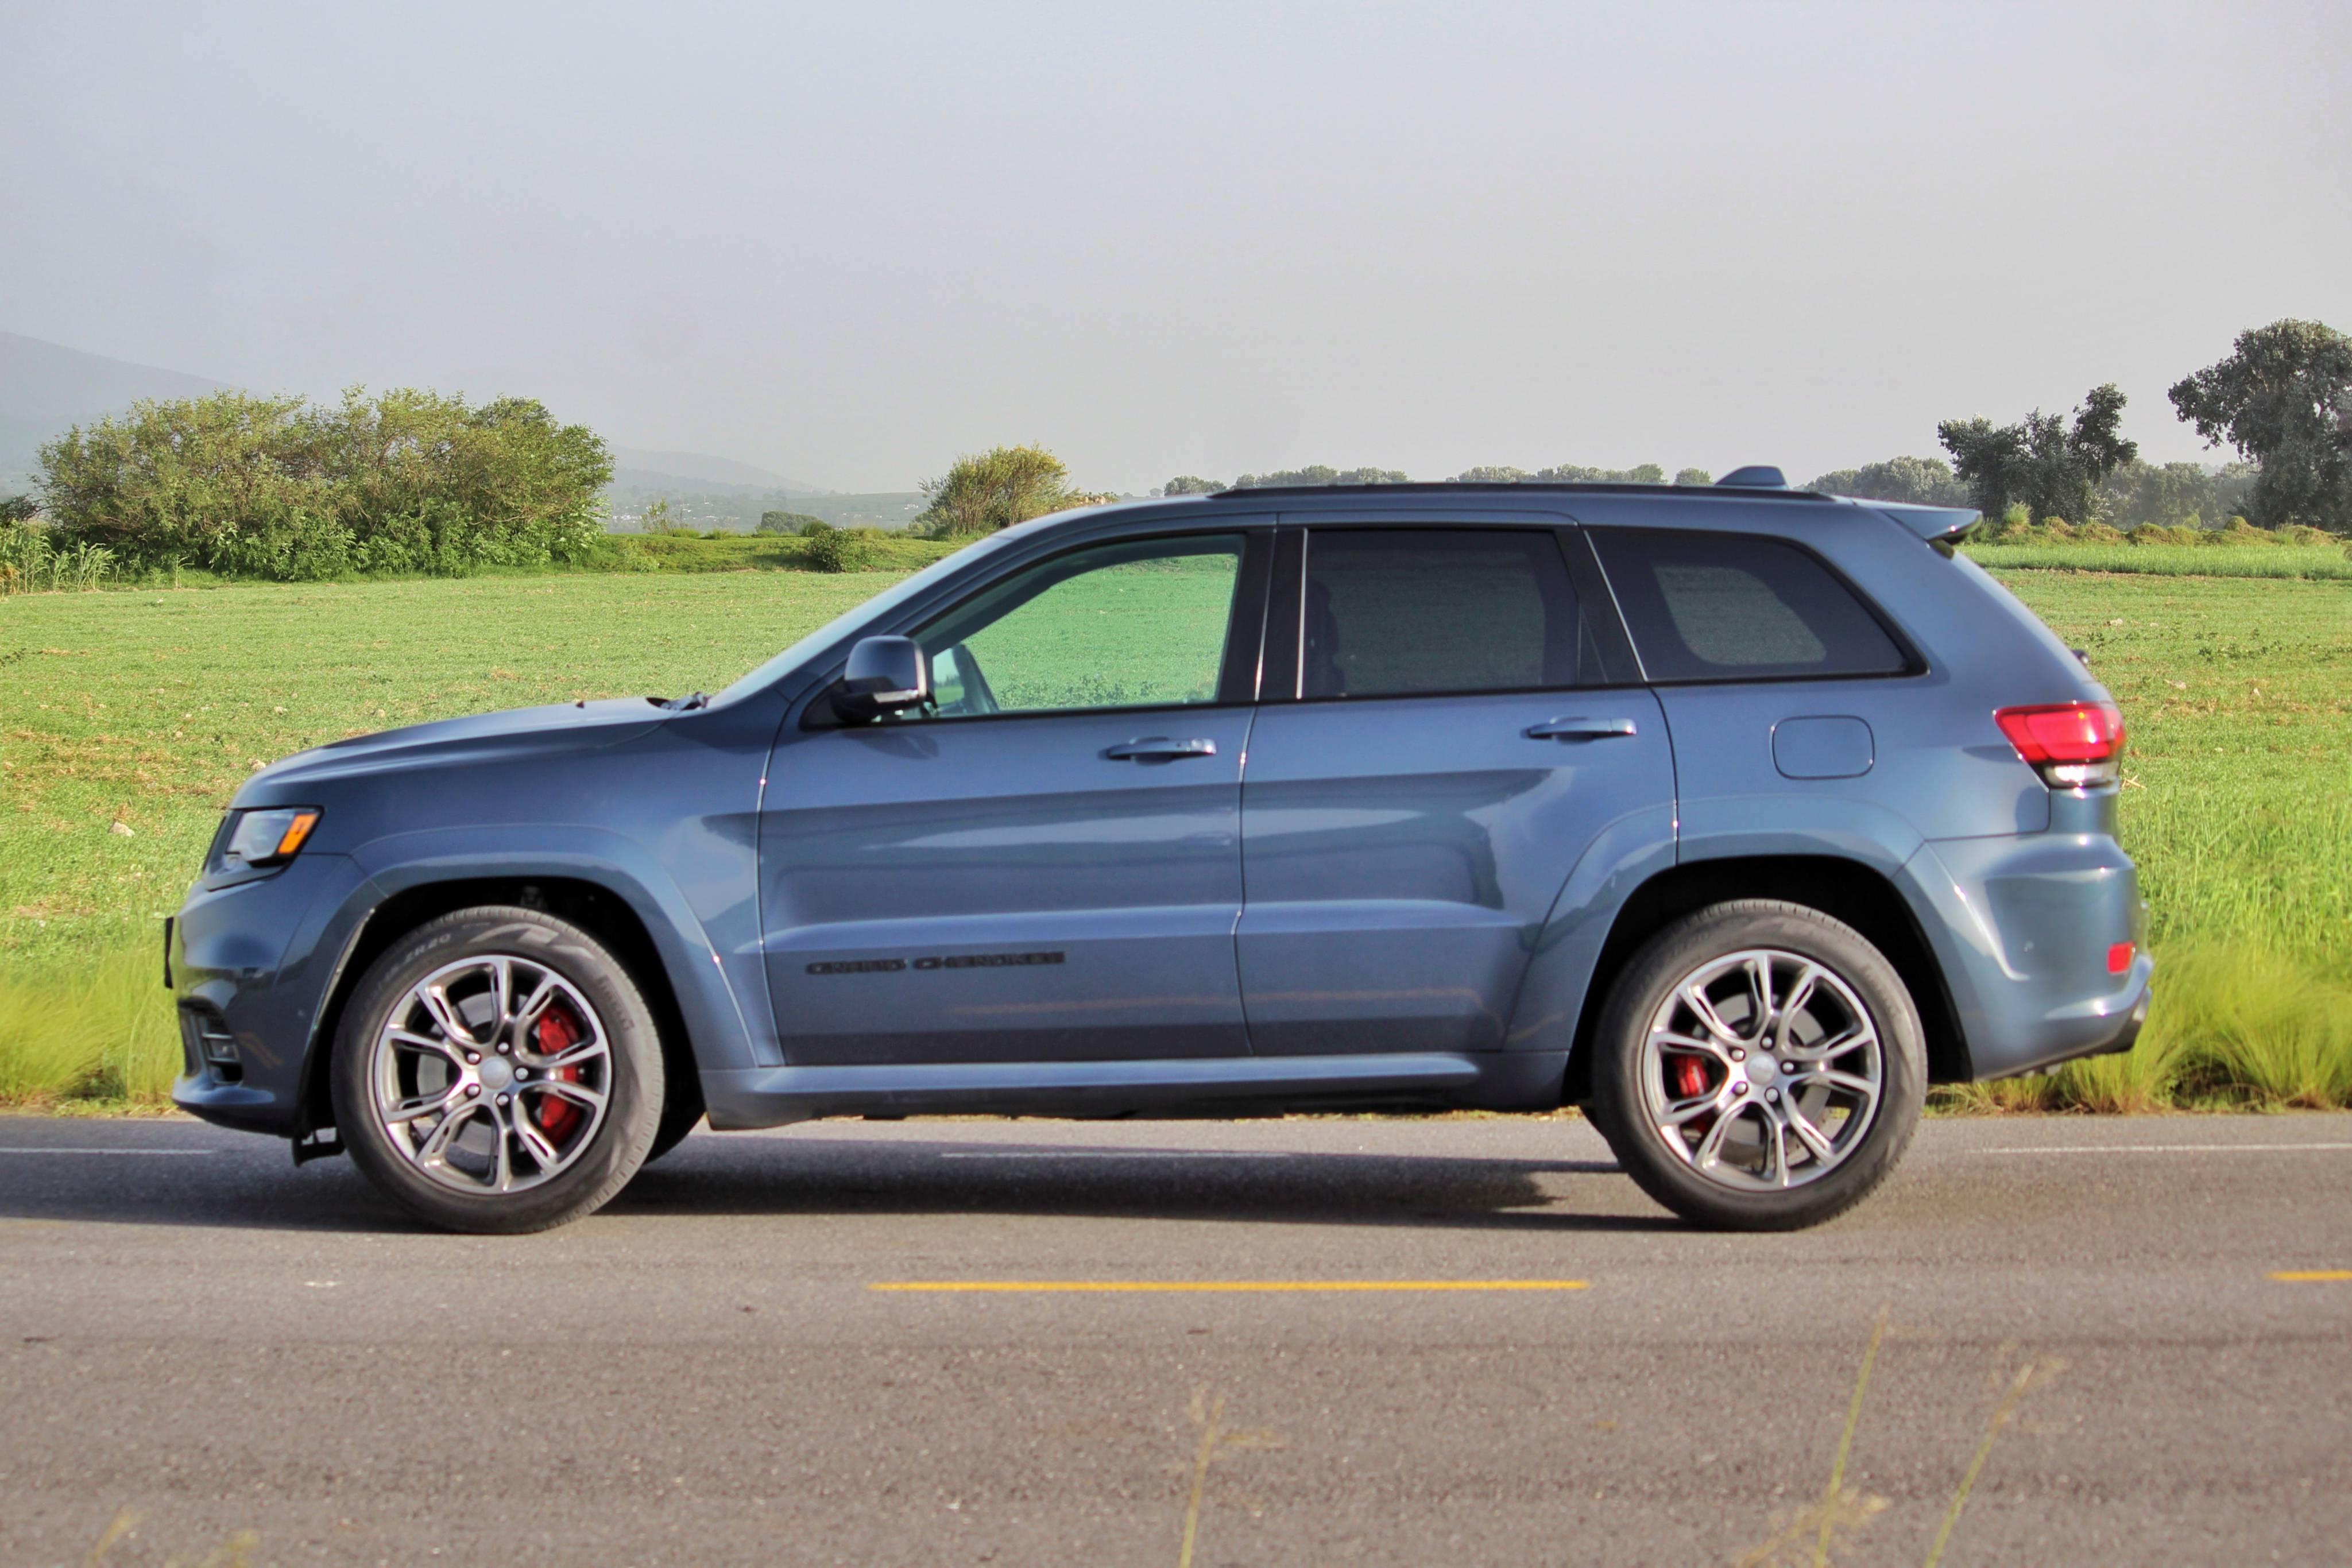 JEEP GRAND CHEROKEE SRT BLUE EDITION